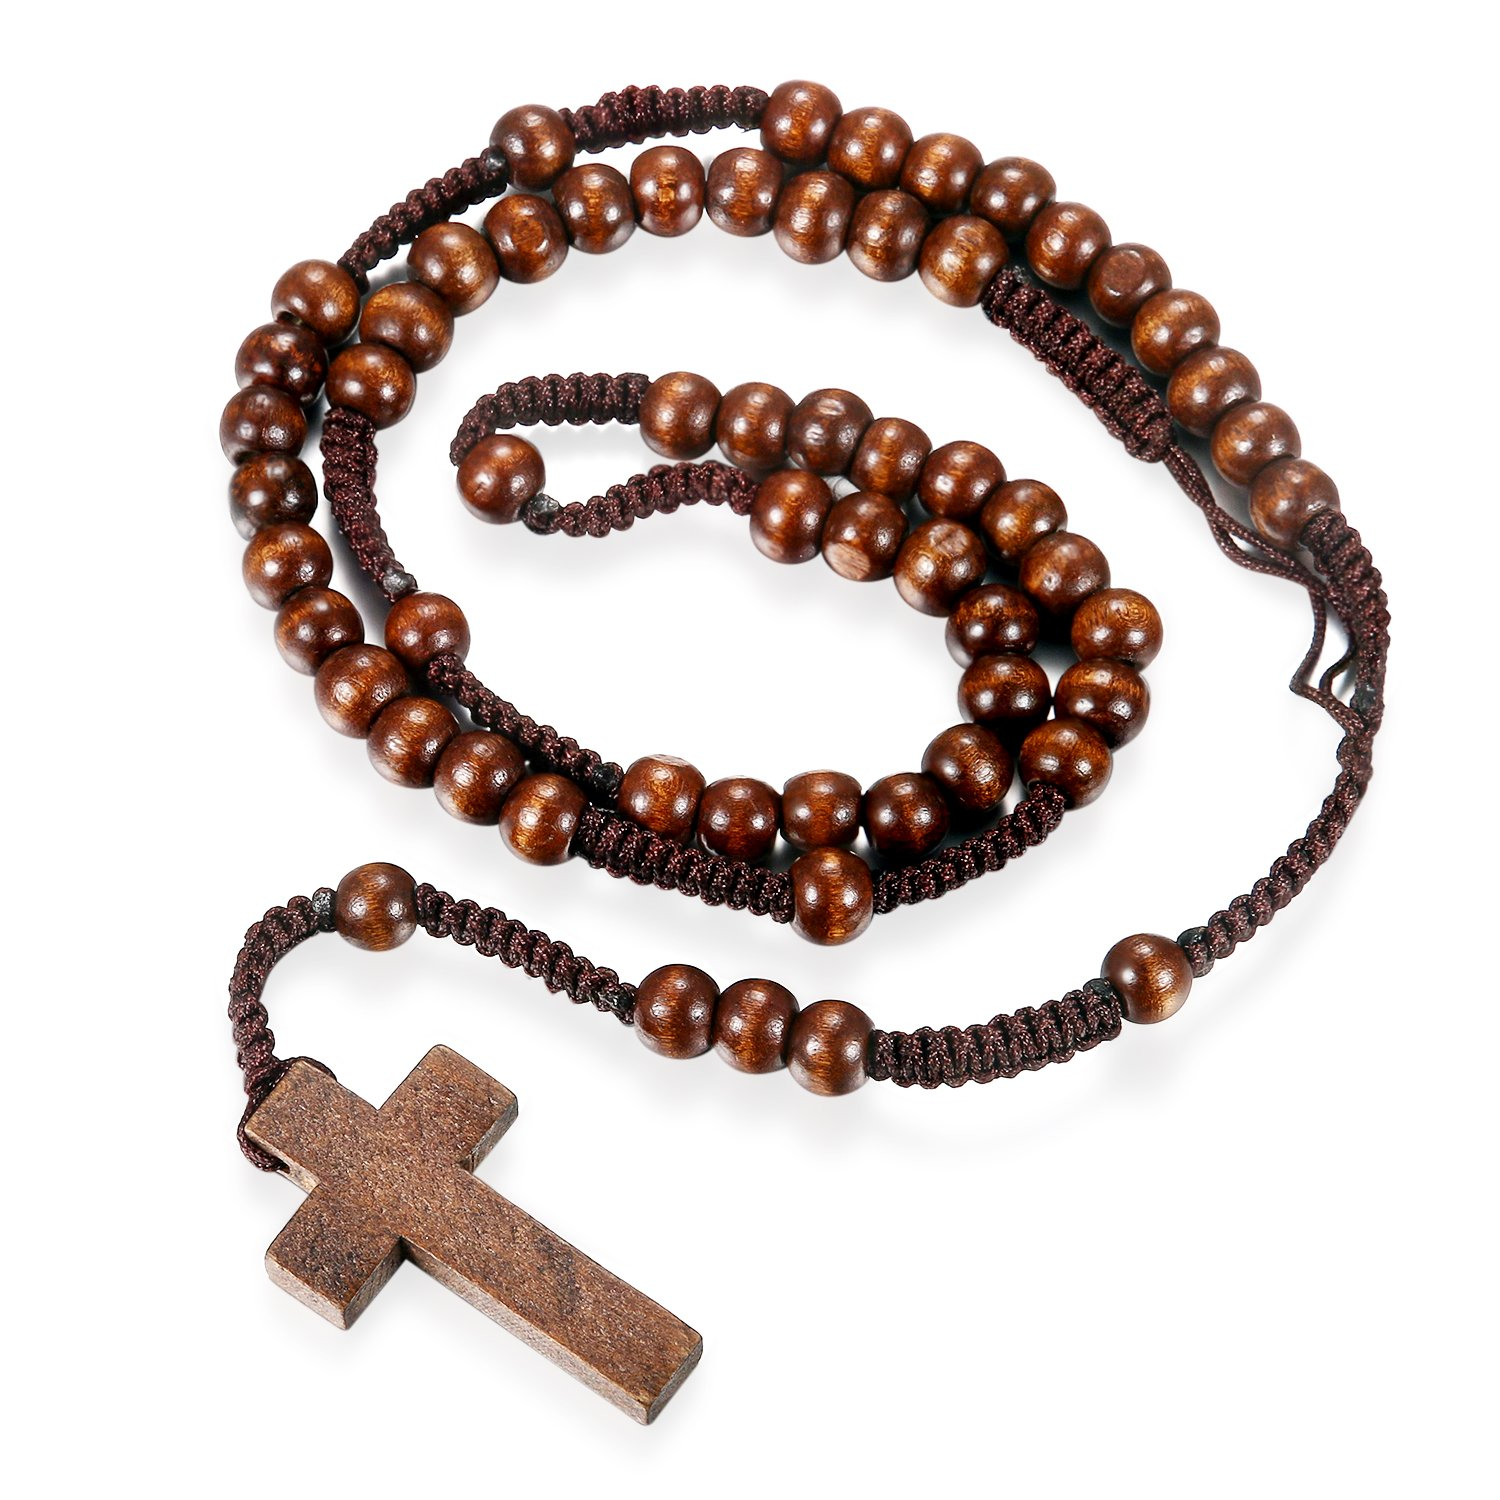 Flongo Mens Womens Vintage Religious Cross Wooden Beads Rosary